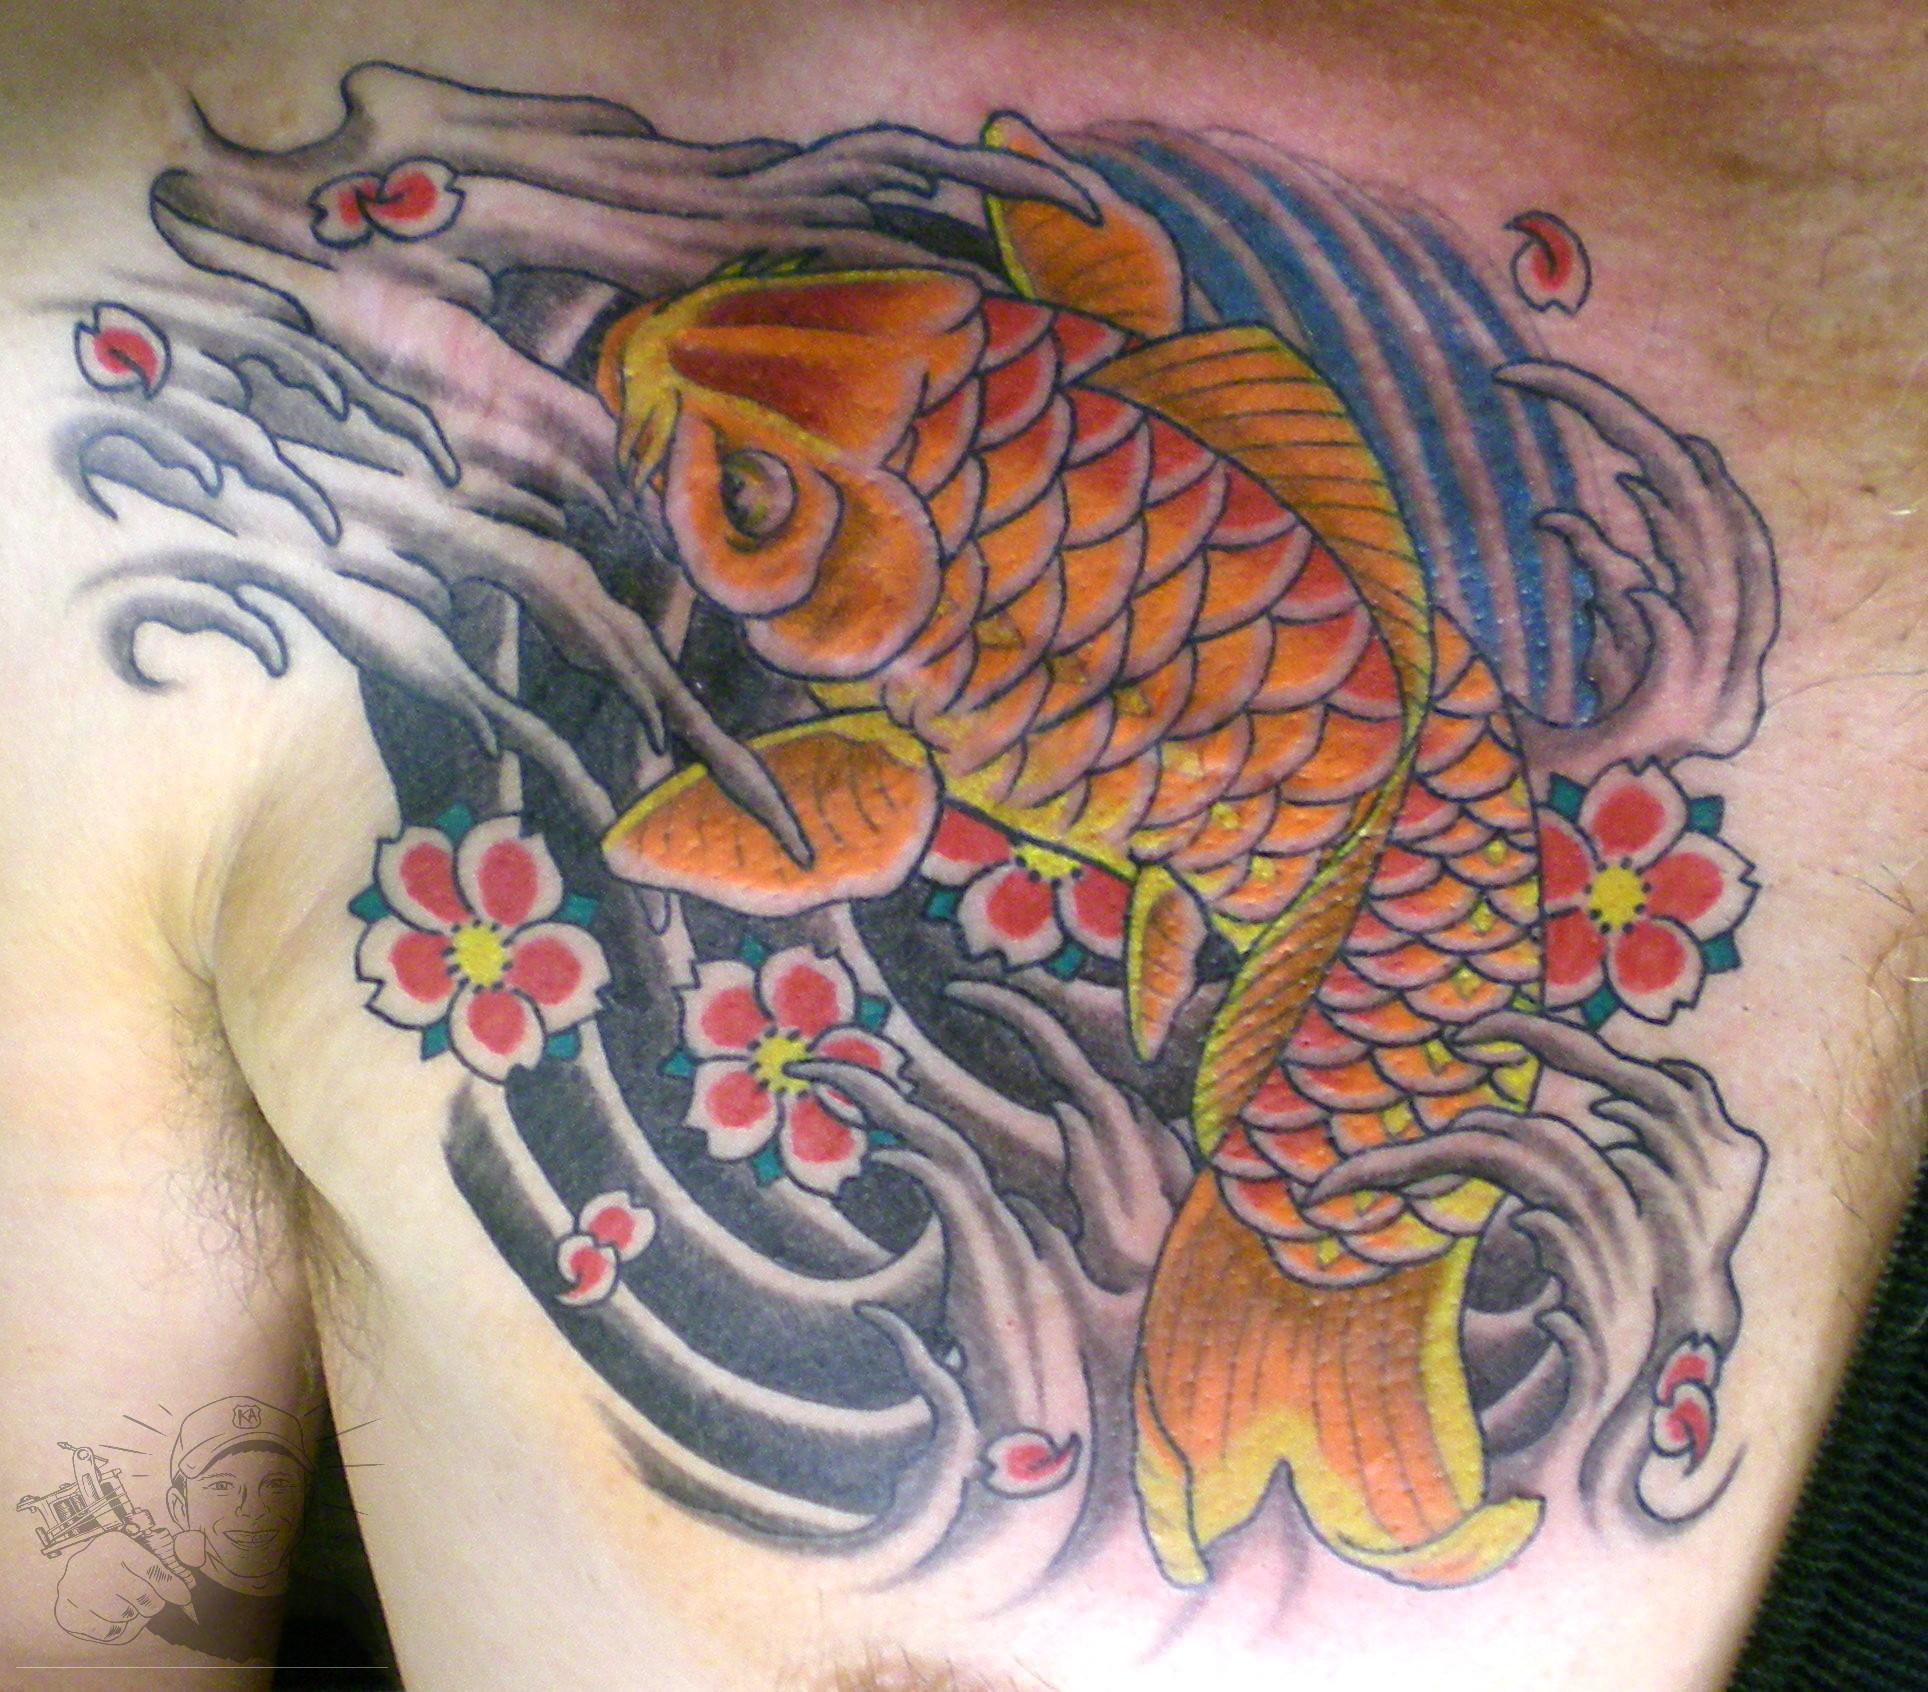 Koi Fish Chest Plate Tattoo Covering Scar